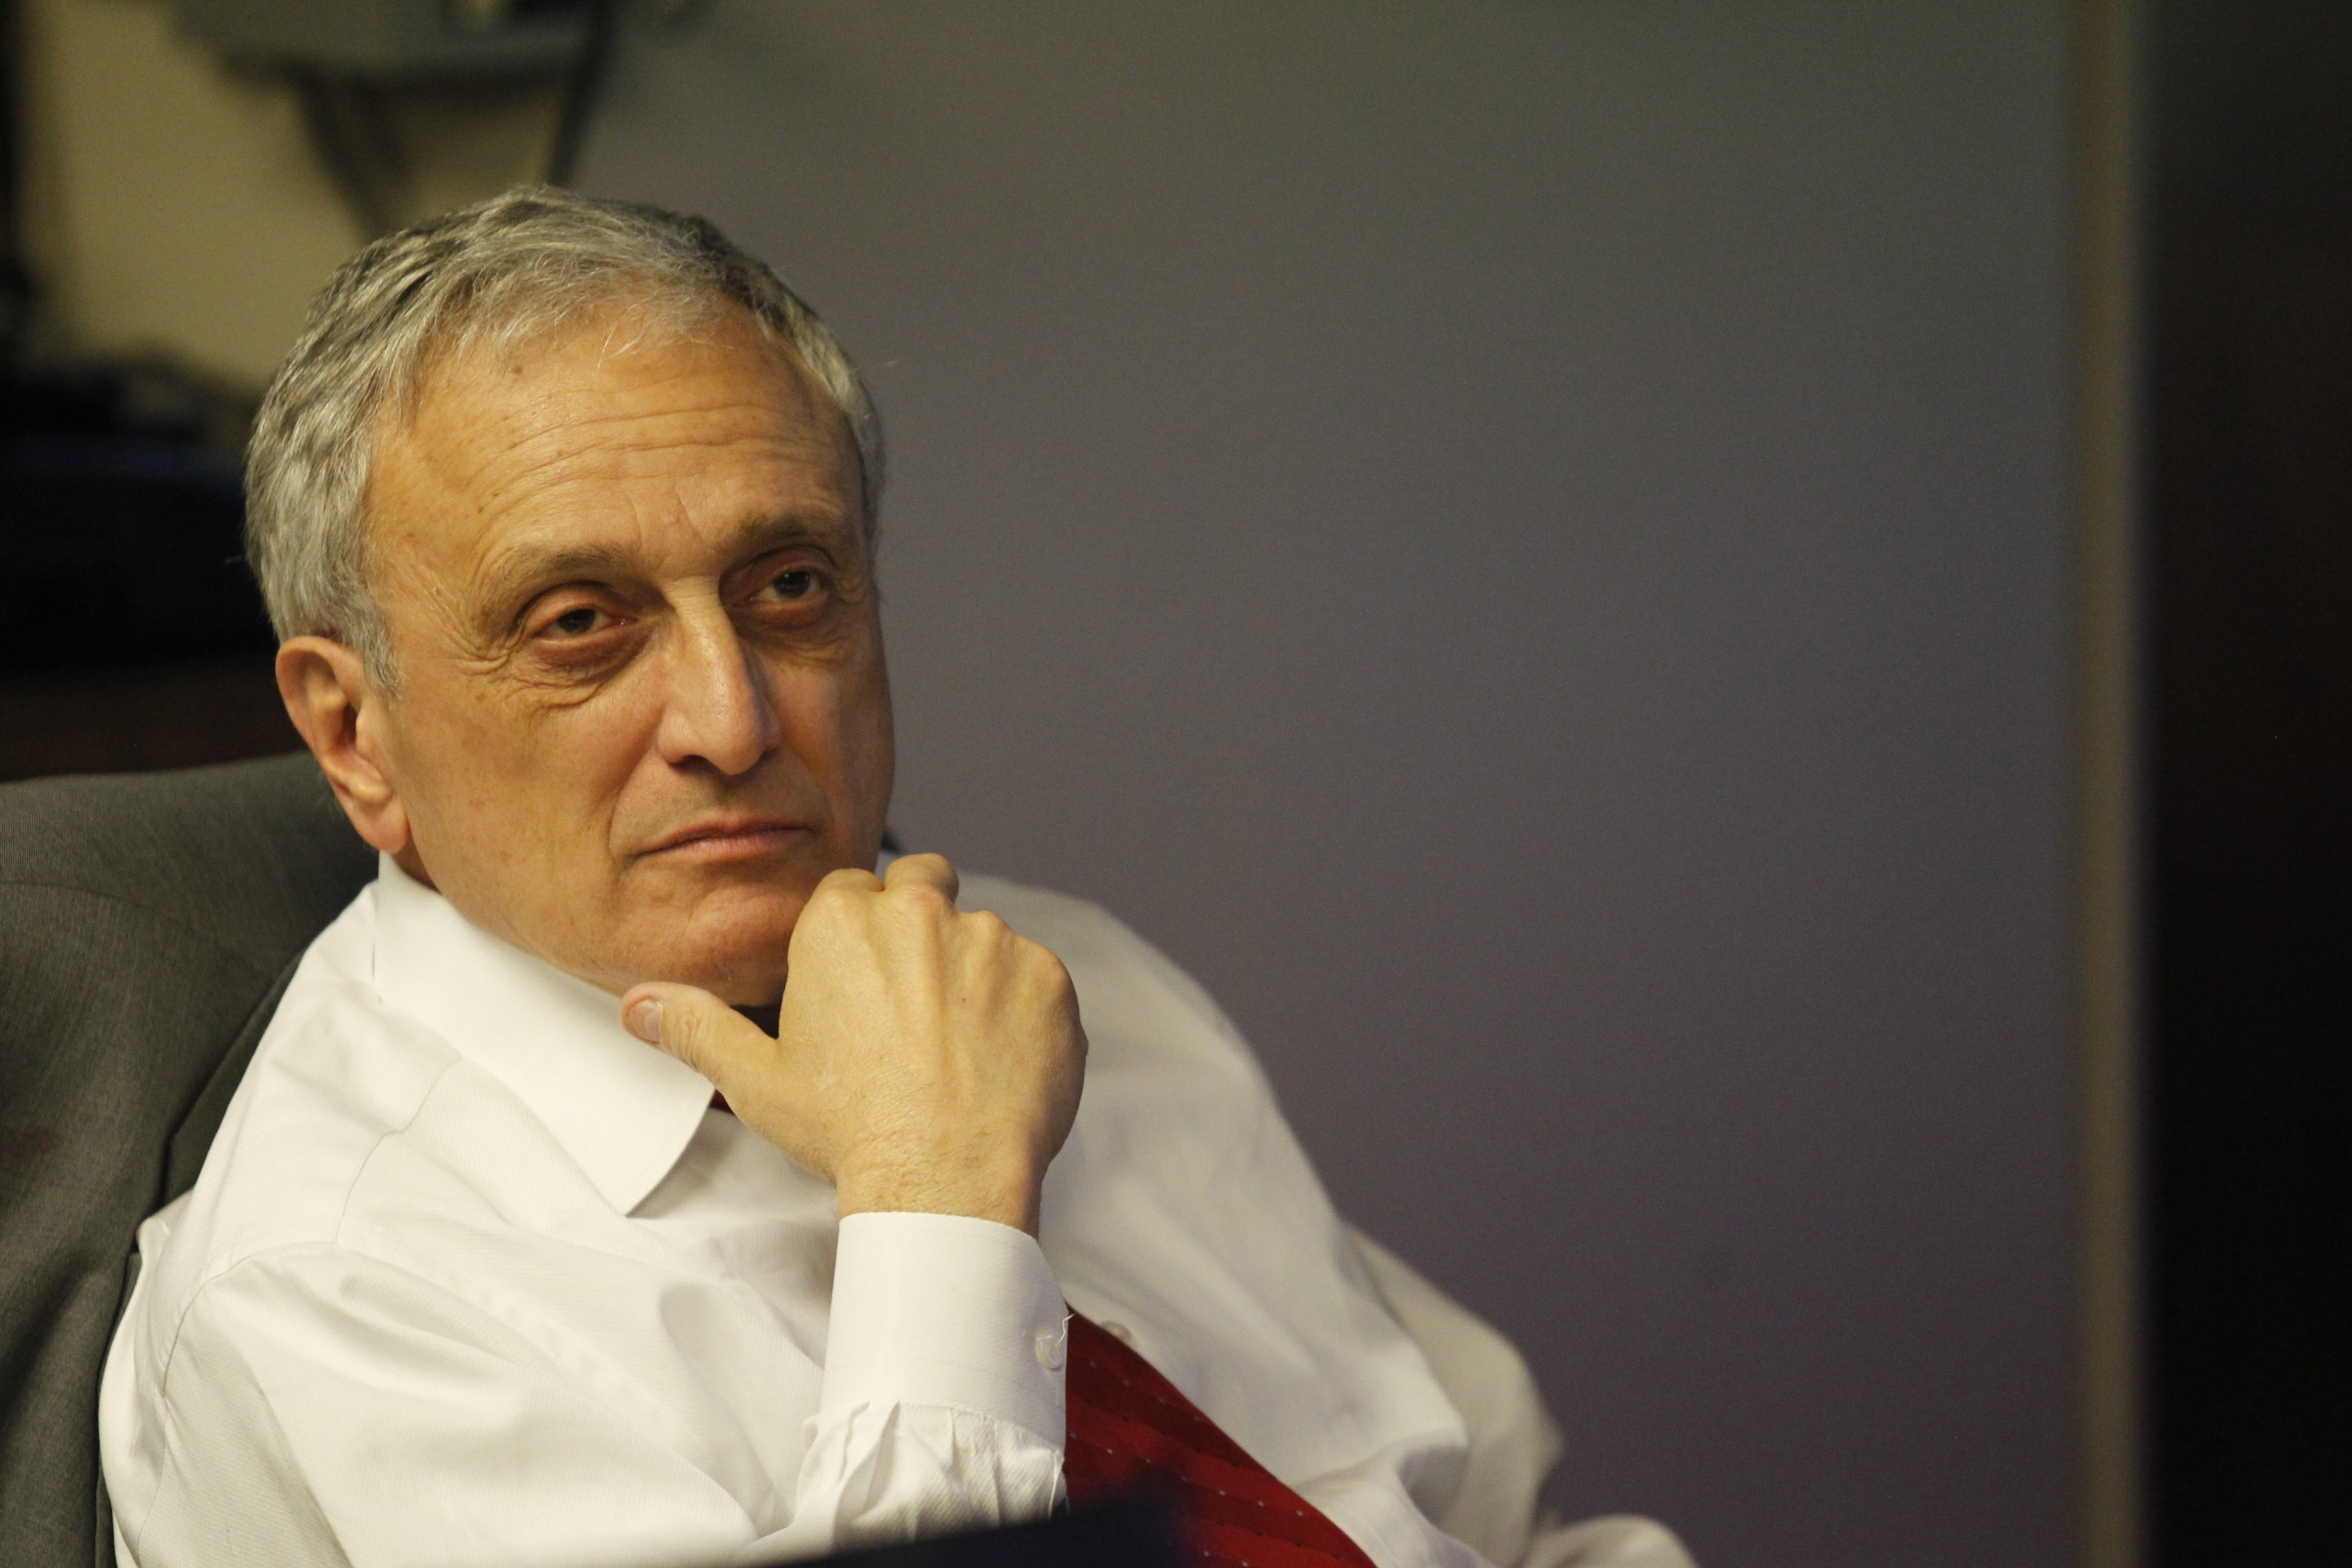 Carl Paladino says charter schools account for only 2 percent of Ellicott Development's holdings and that no other developers have charter school holdings because they are too risky an investment. (Harry Scull Jr./Buffalo News)